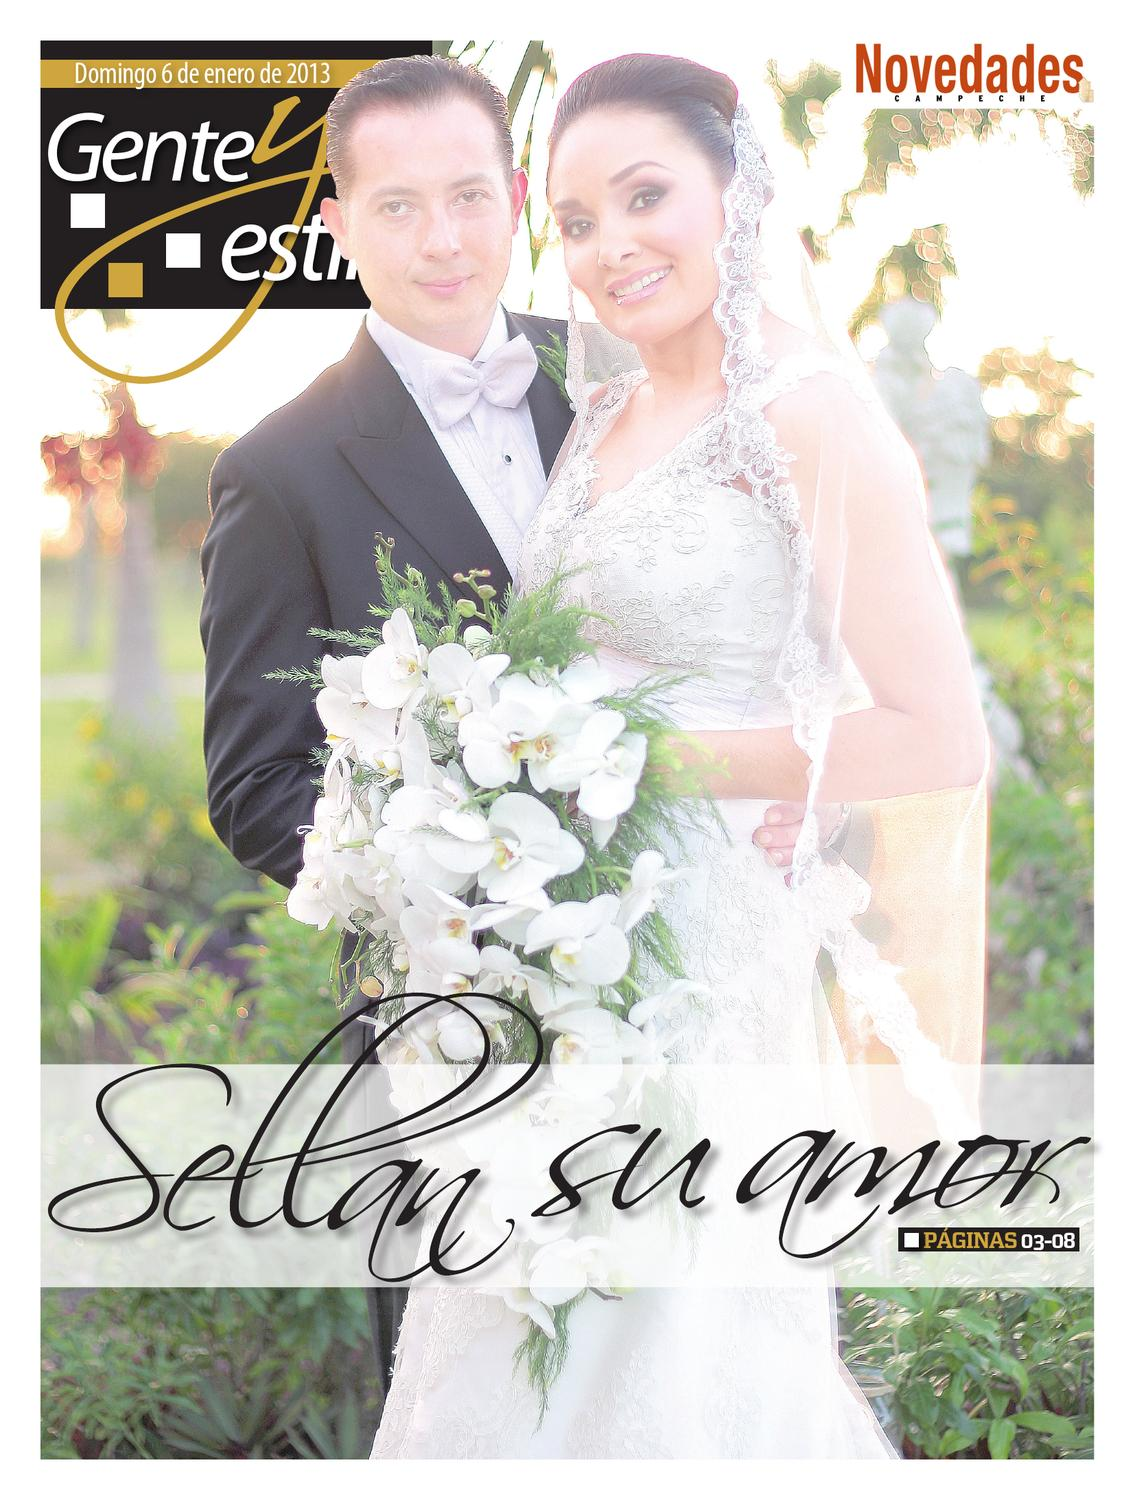 Gye 06 enero 2013 by novedades campeche issuu for Karina paredes pacheco